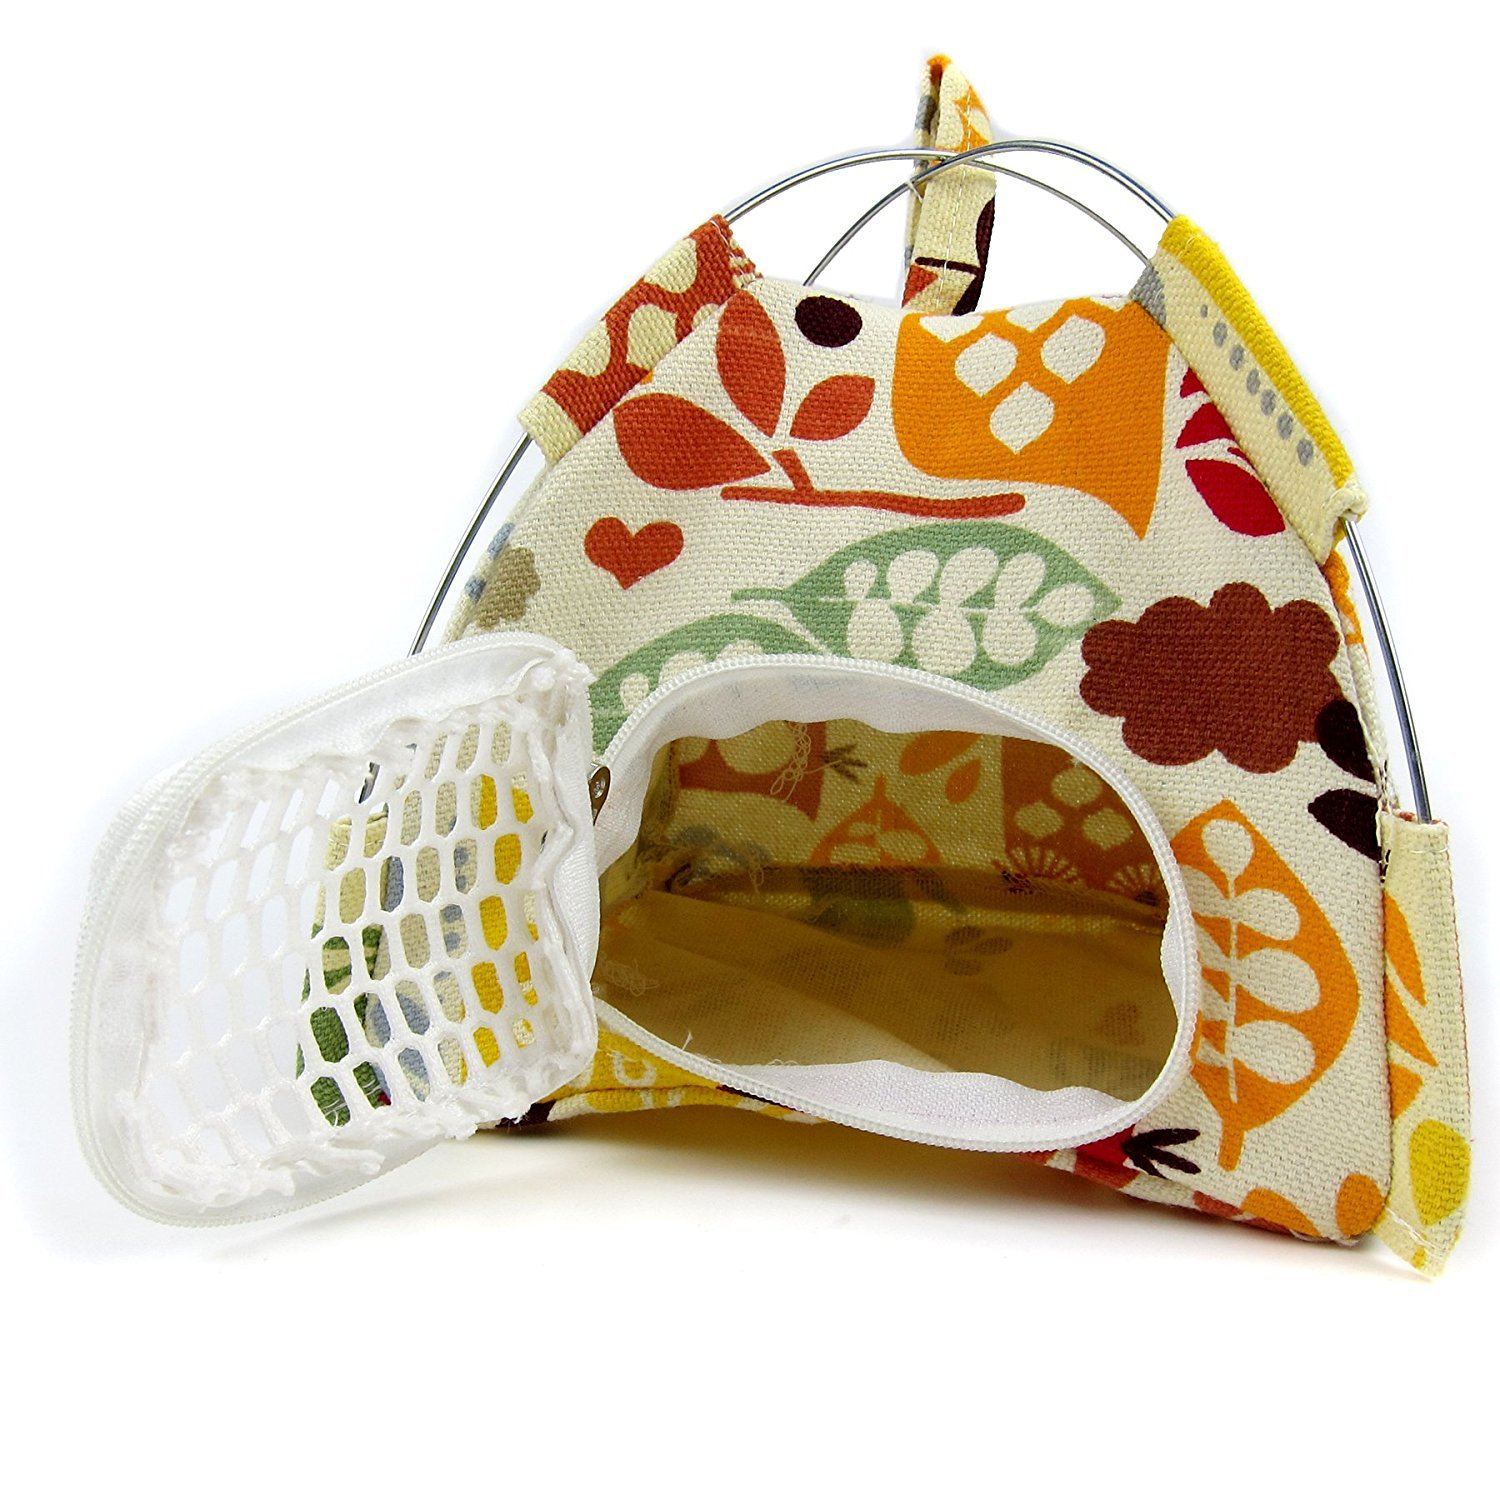 Lazynice Hamster Cage, Small Pet Outdoor Tents, Folding Pet Cage, Washable Hamster Pet Carriers Tent for Dwarf Pet Rat Bed Hedgehog Golden Squirrel,Gold Horn Bear (1414cm, colorful)